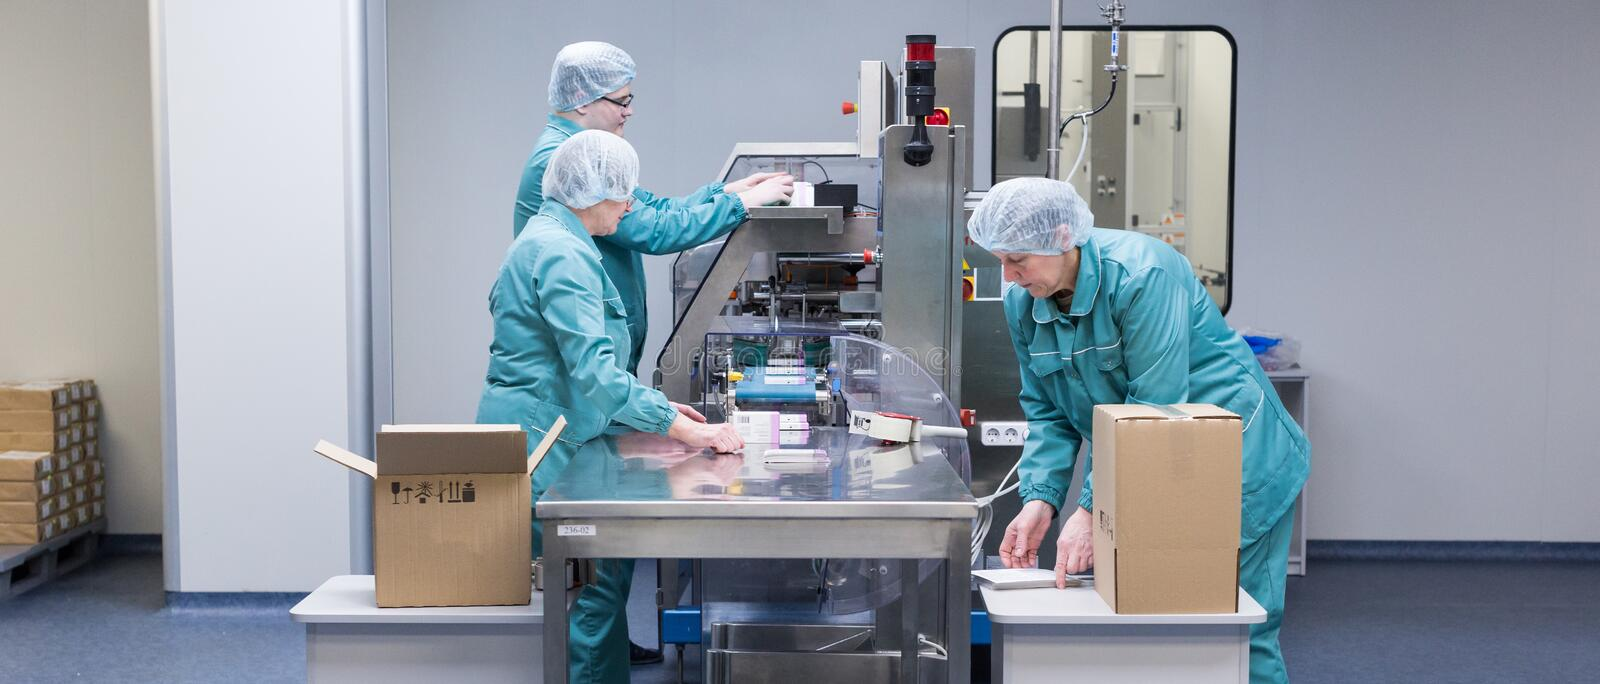 Pharmaceutical factory workers in sterile environment stock images